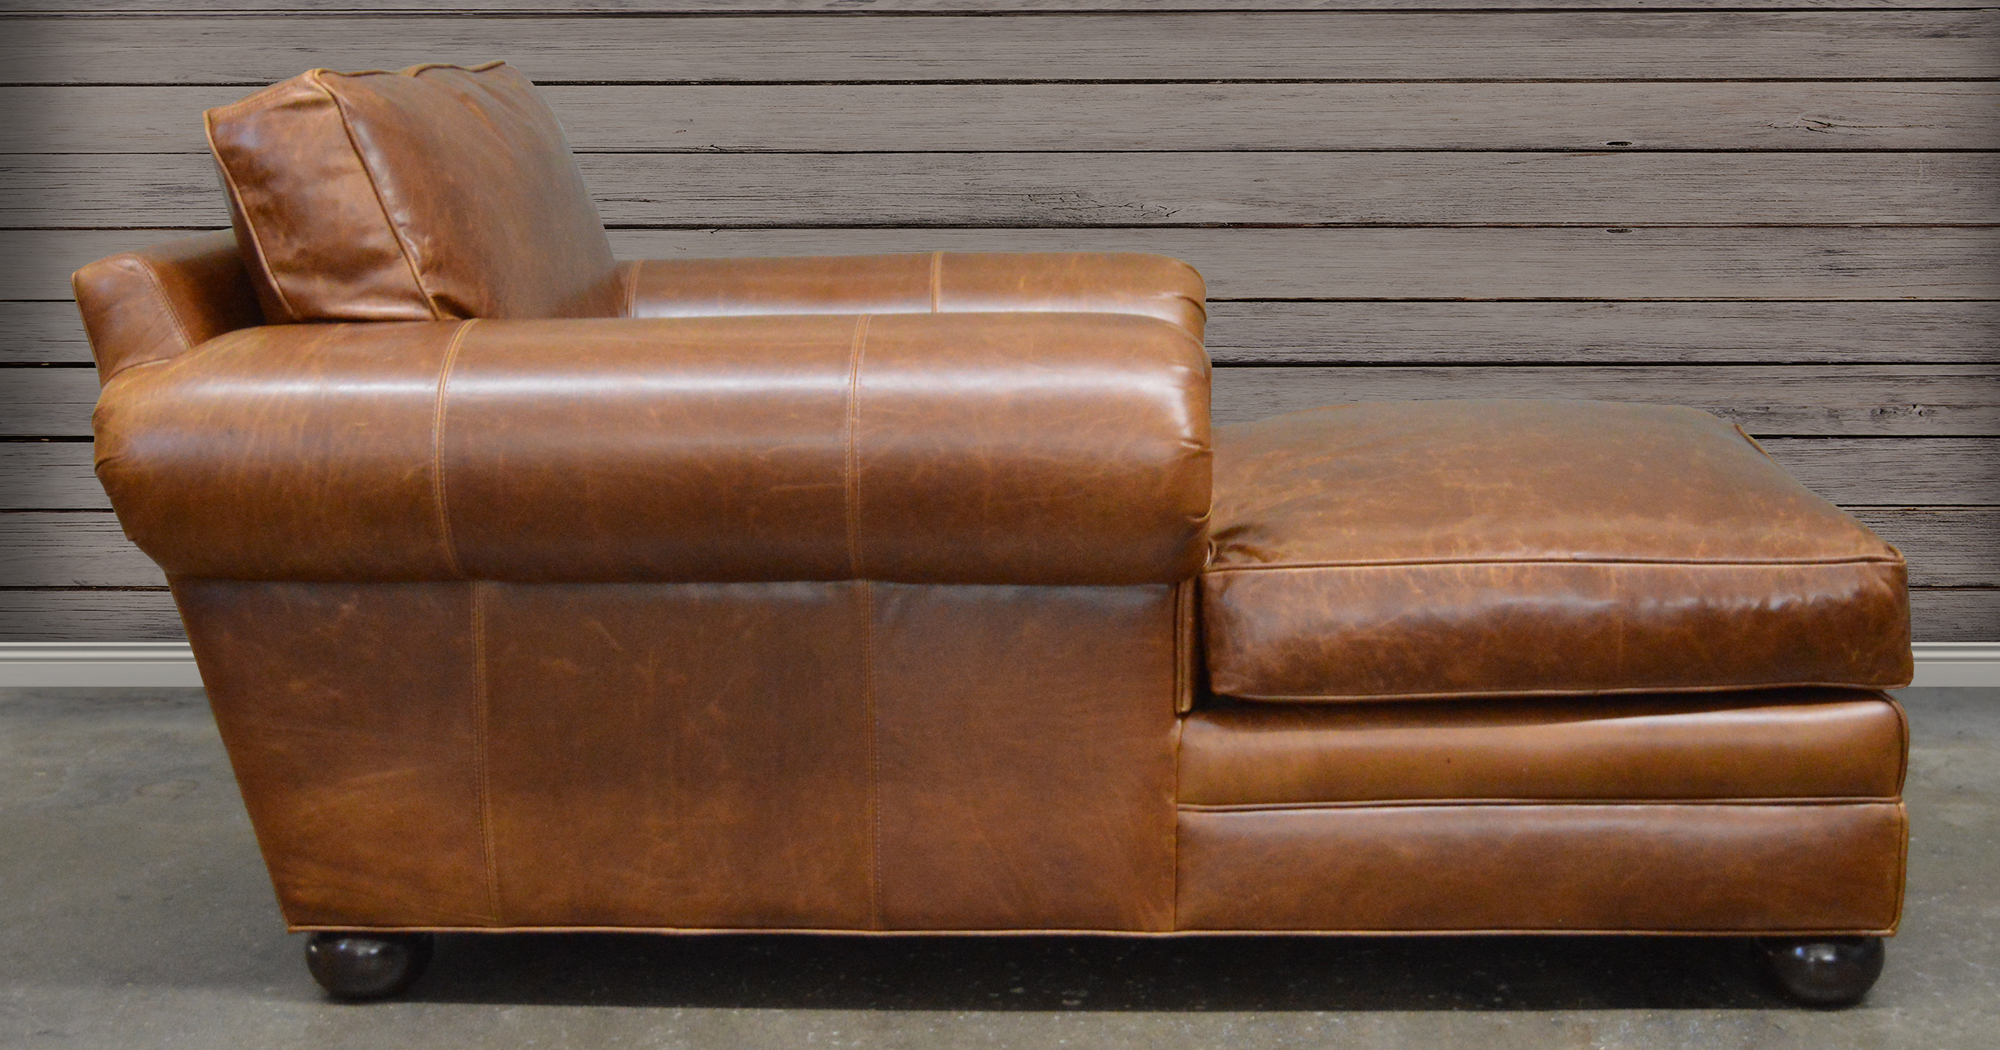 Langston Leather Chaise in Italian Brompton Classic Vintage